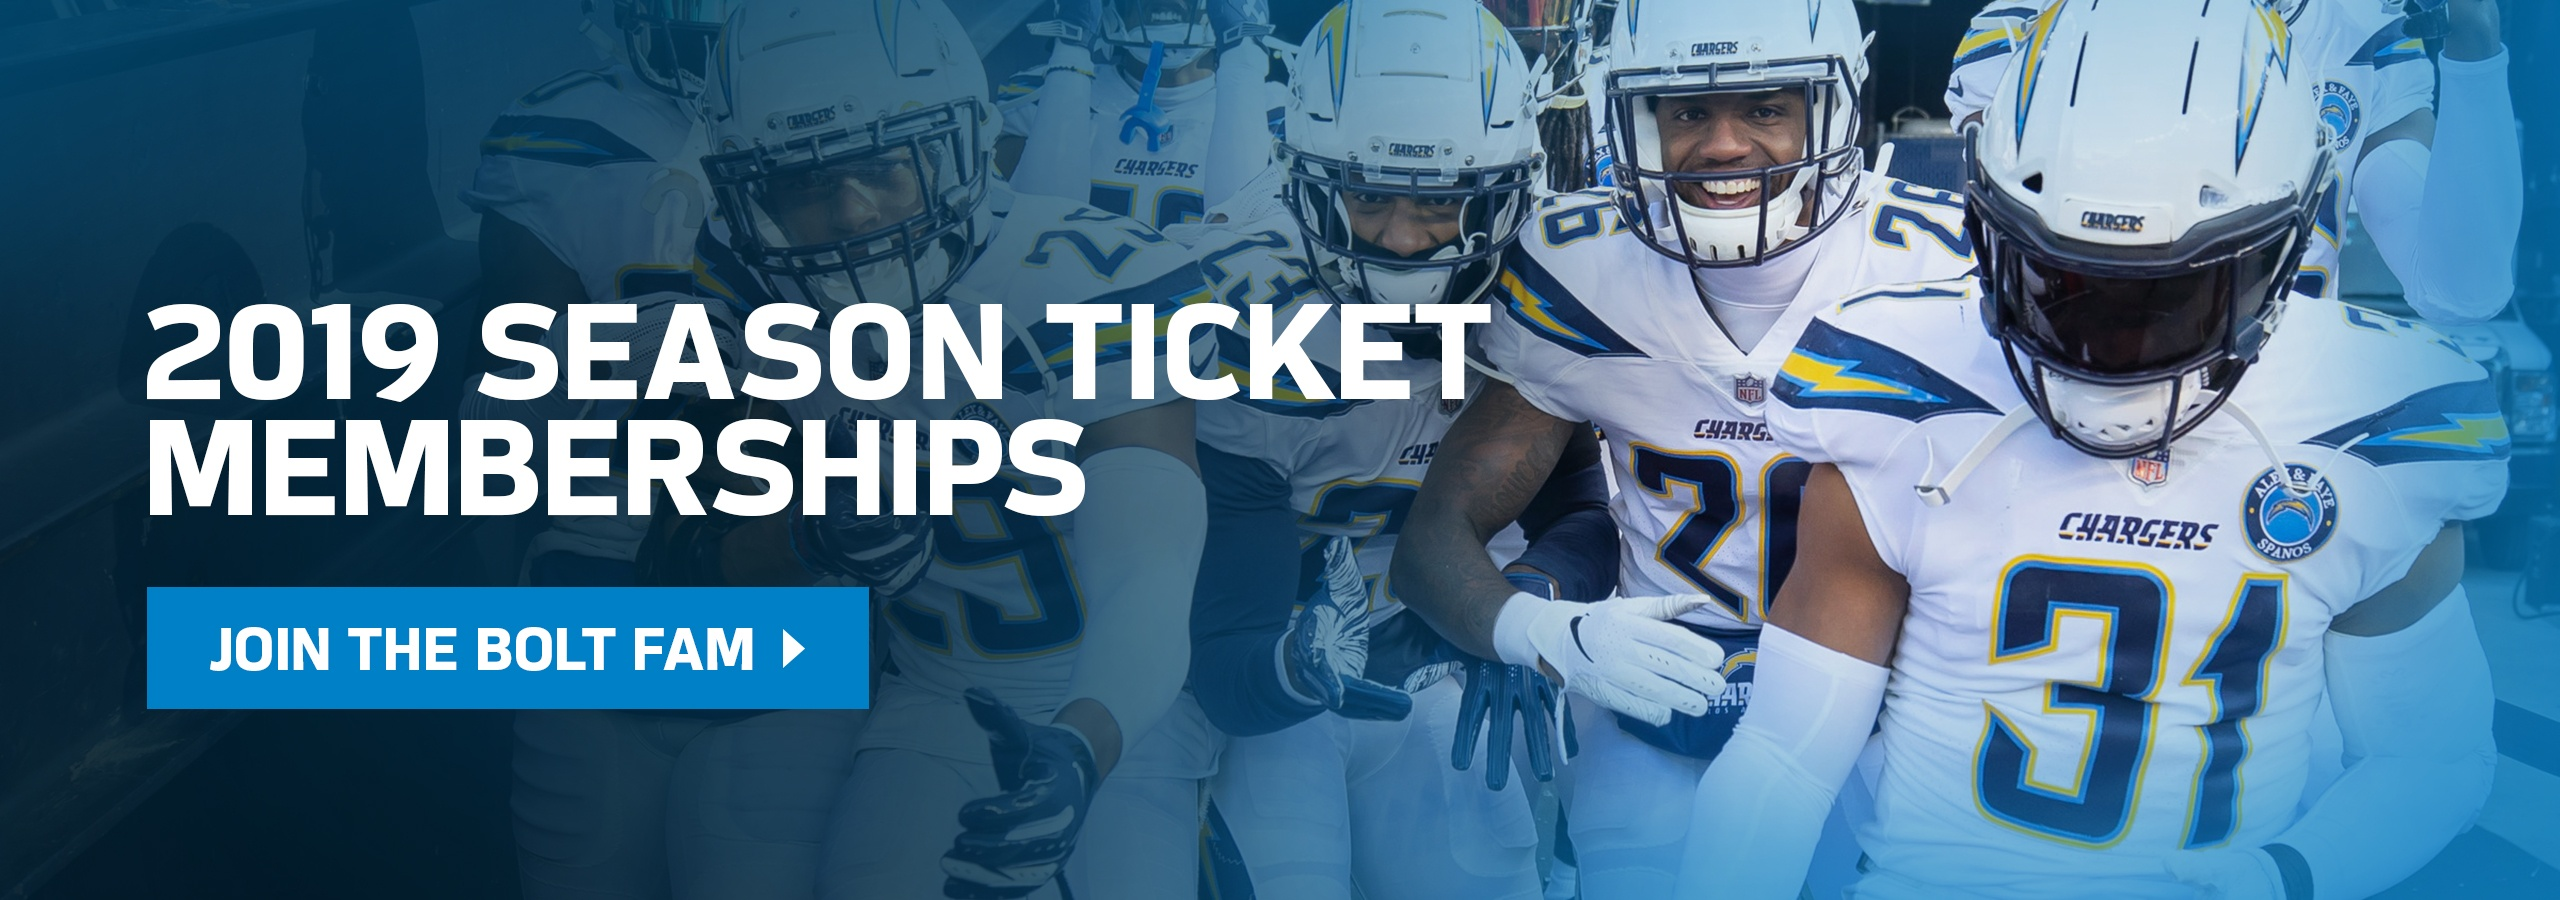 2019 Season Ticket Memberships: On Sale Now